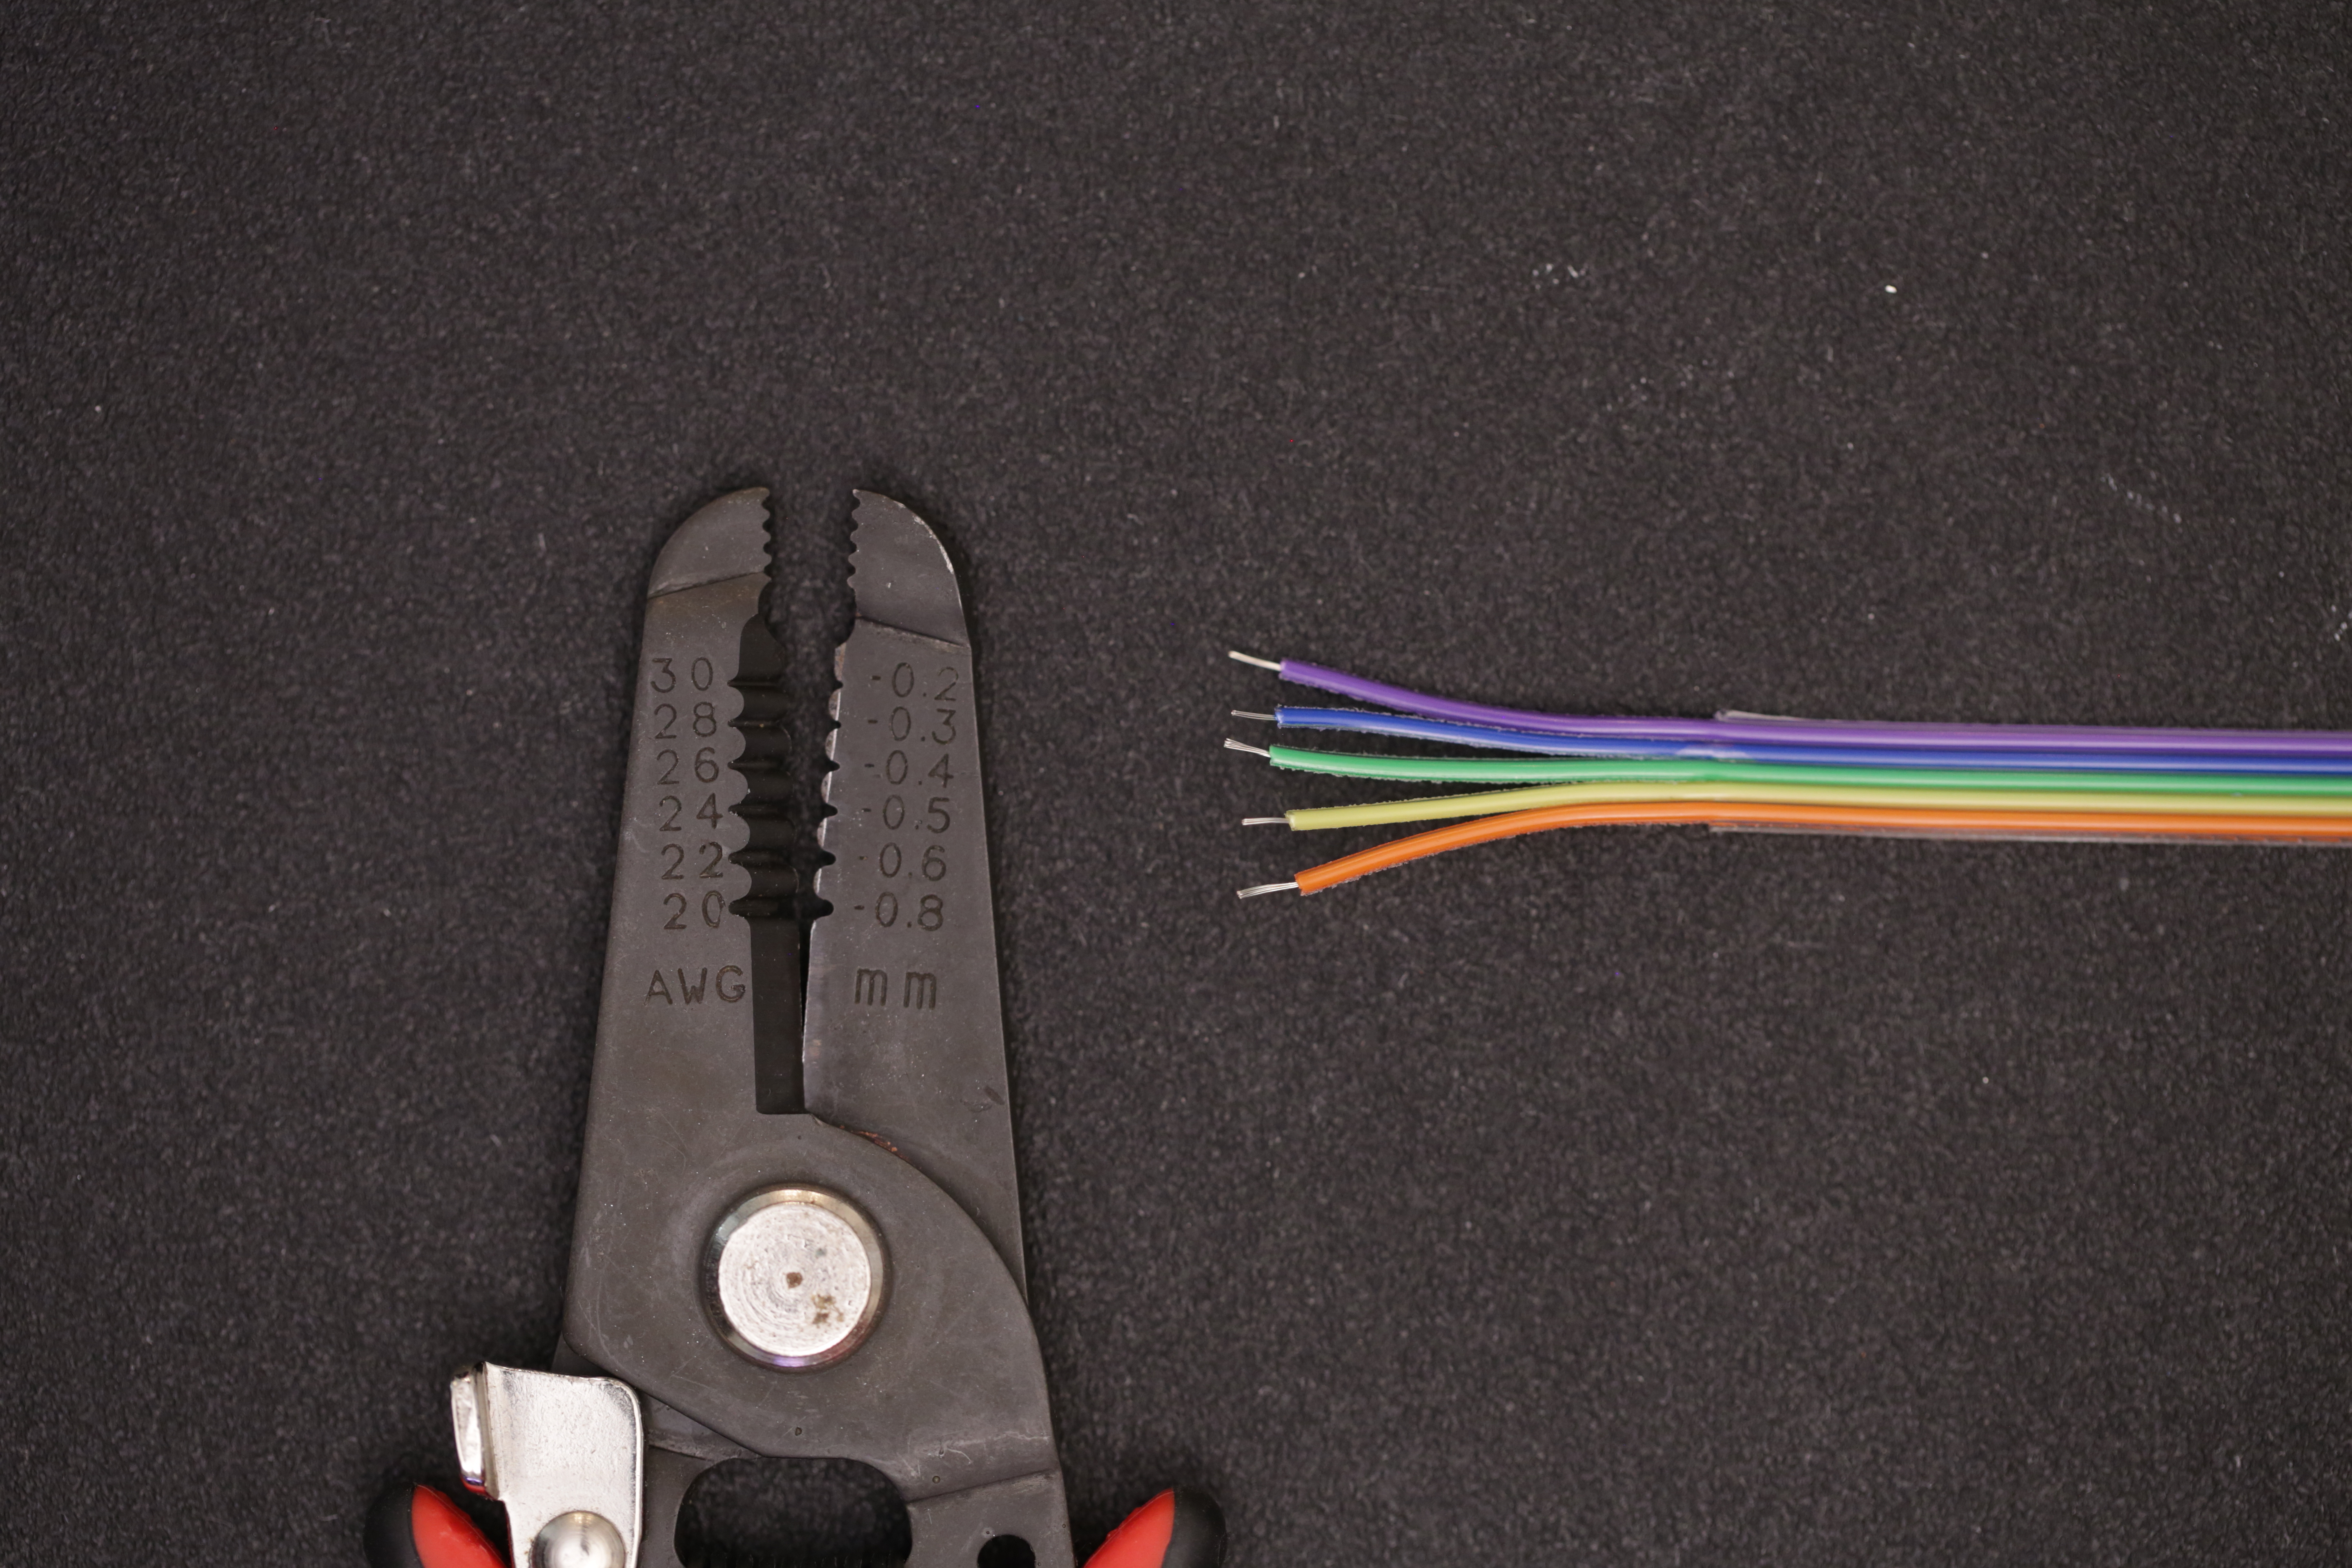 leds_stripped_jumper_tips.jpg